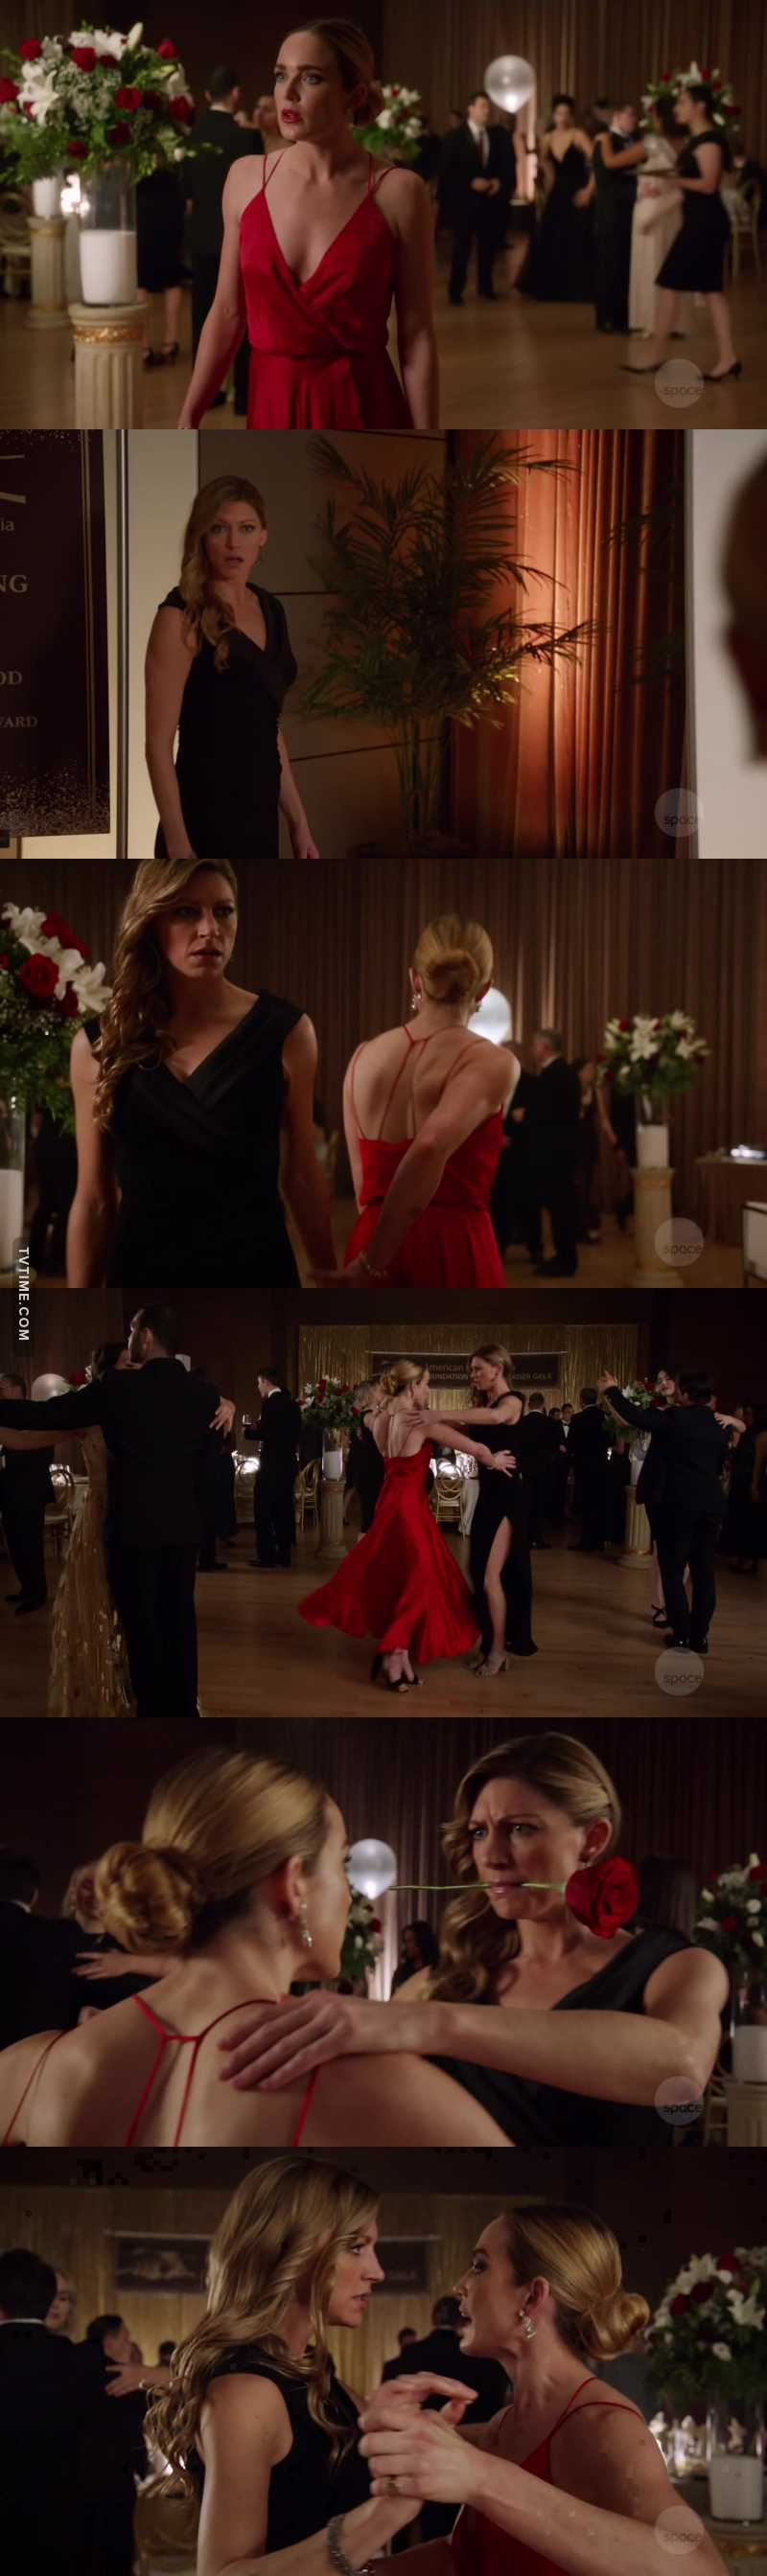 I loved that we got to see Avalance dancing even if they were arguing❤️🤷♀️